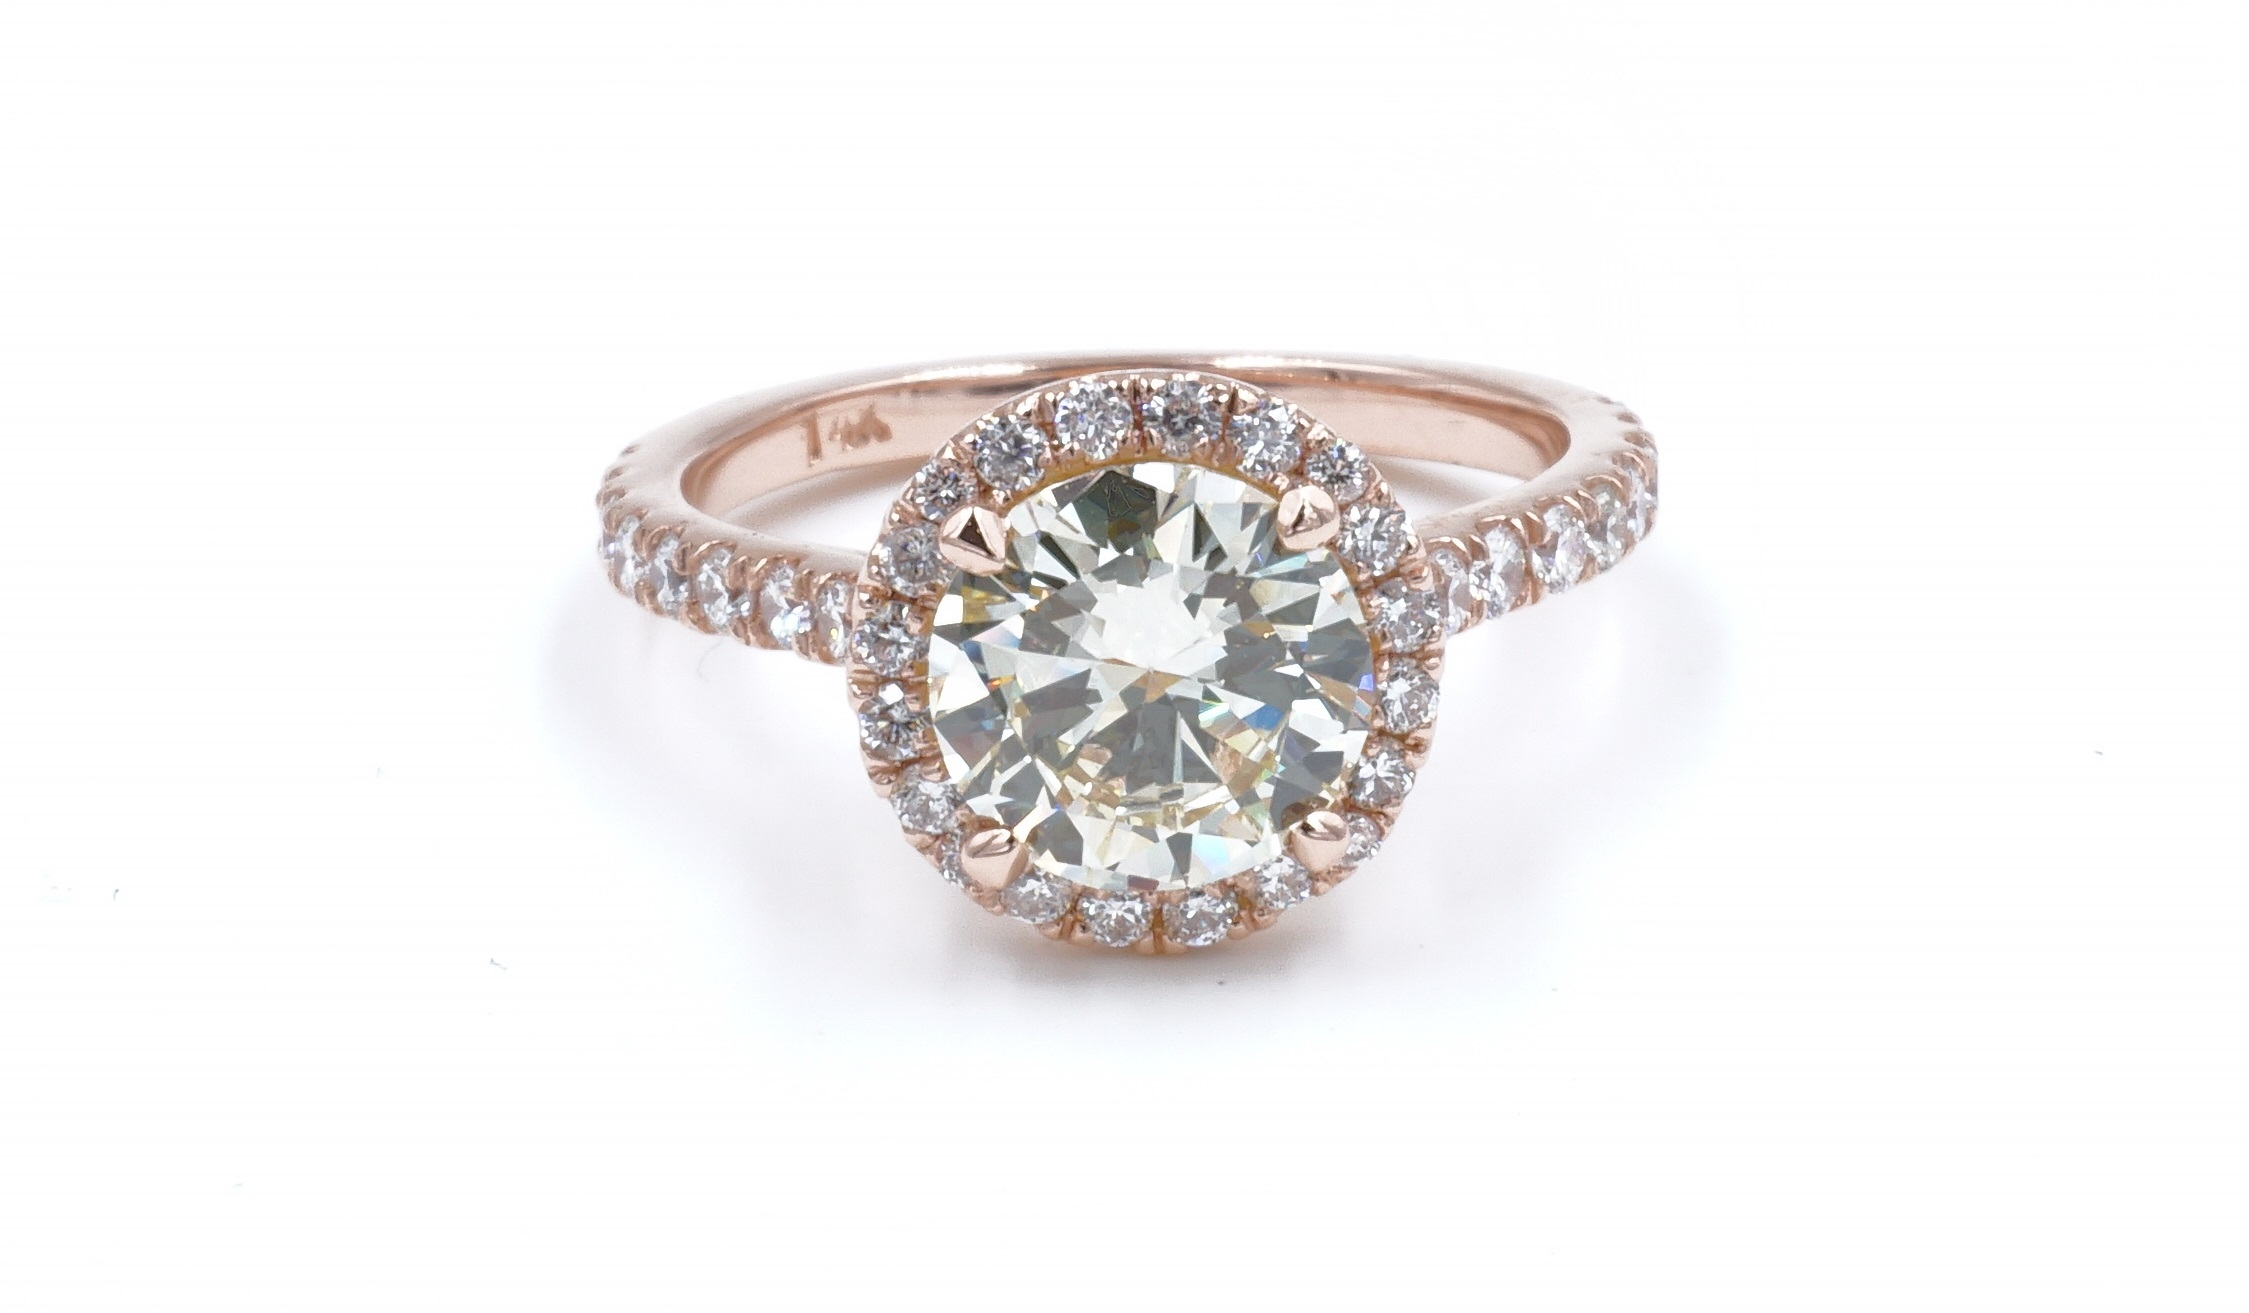 Halo Style Round Brilliant Cut Diamond Engagement Ring